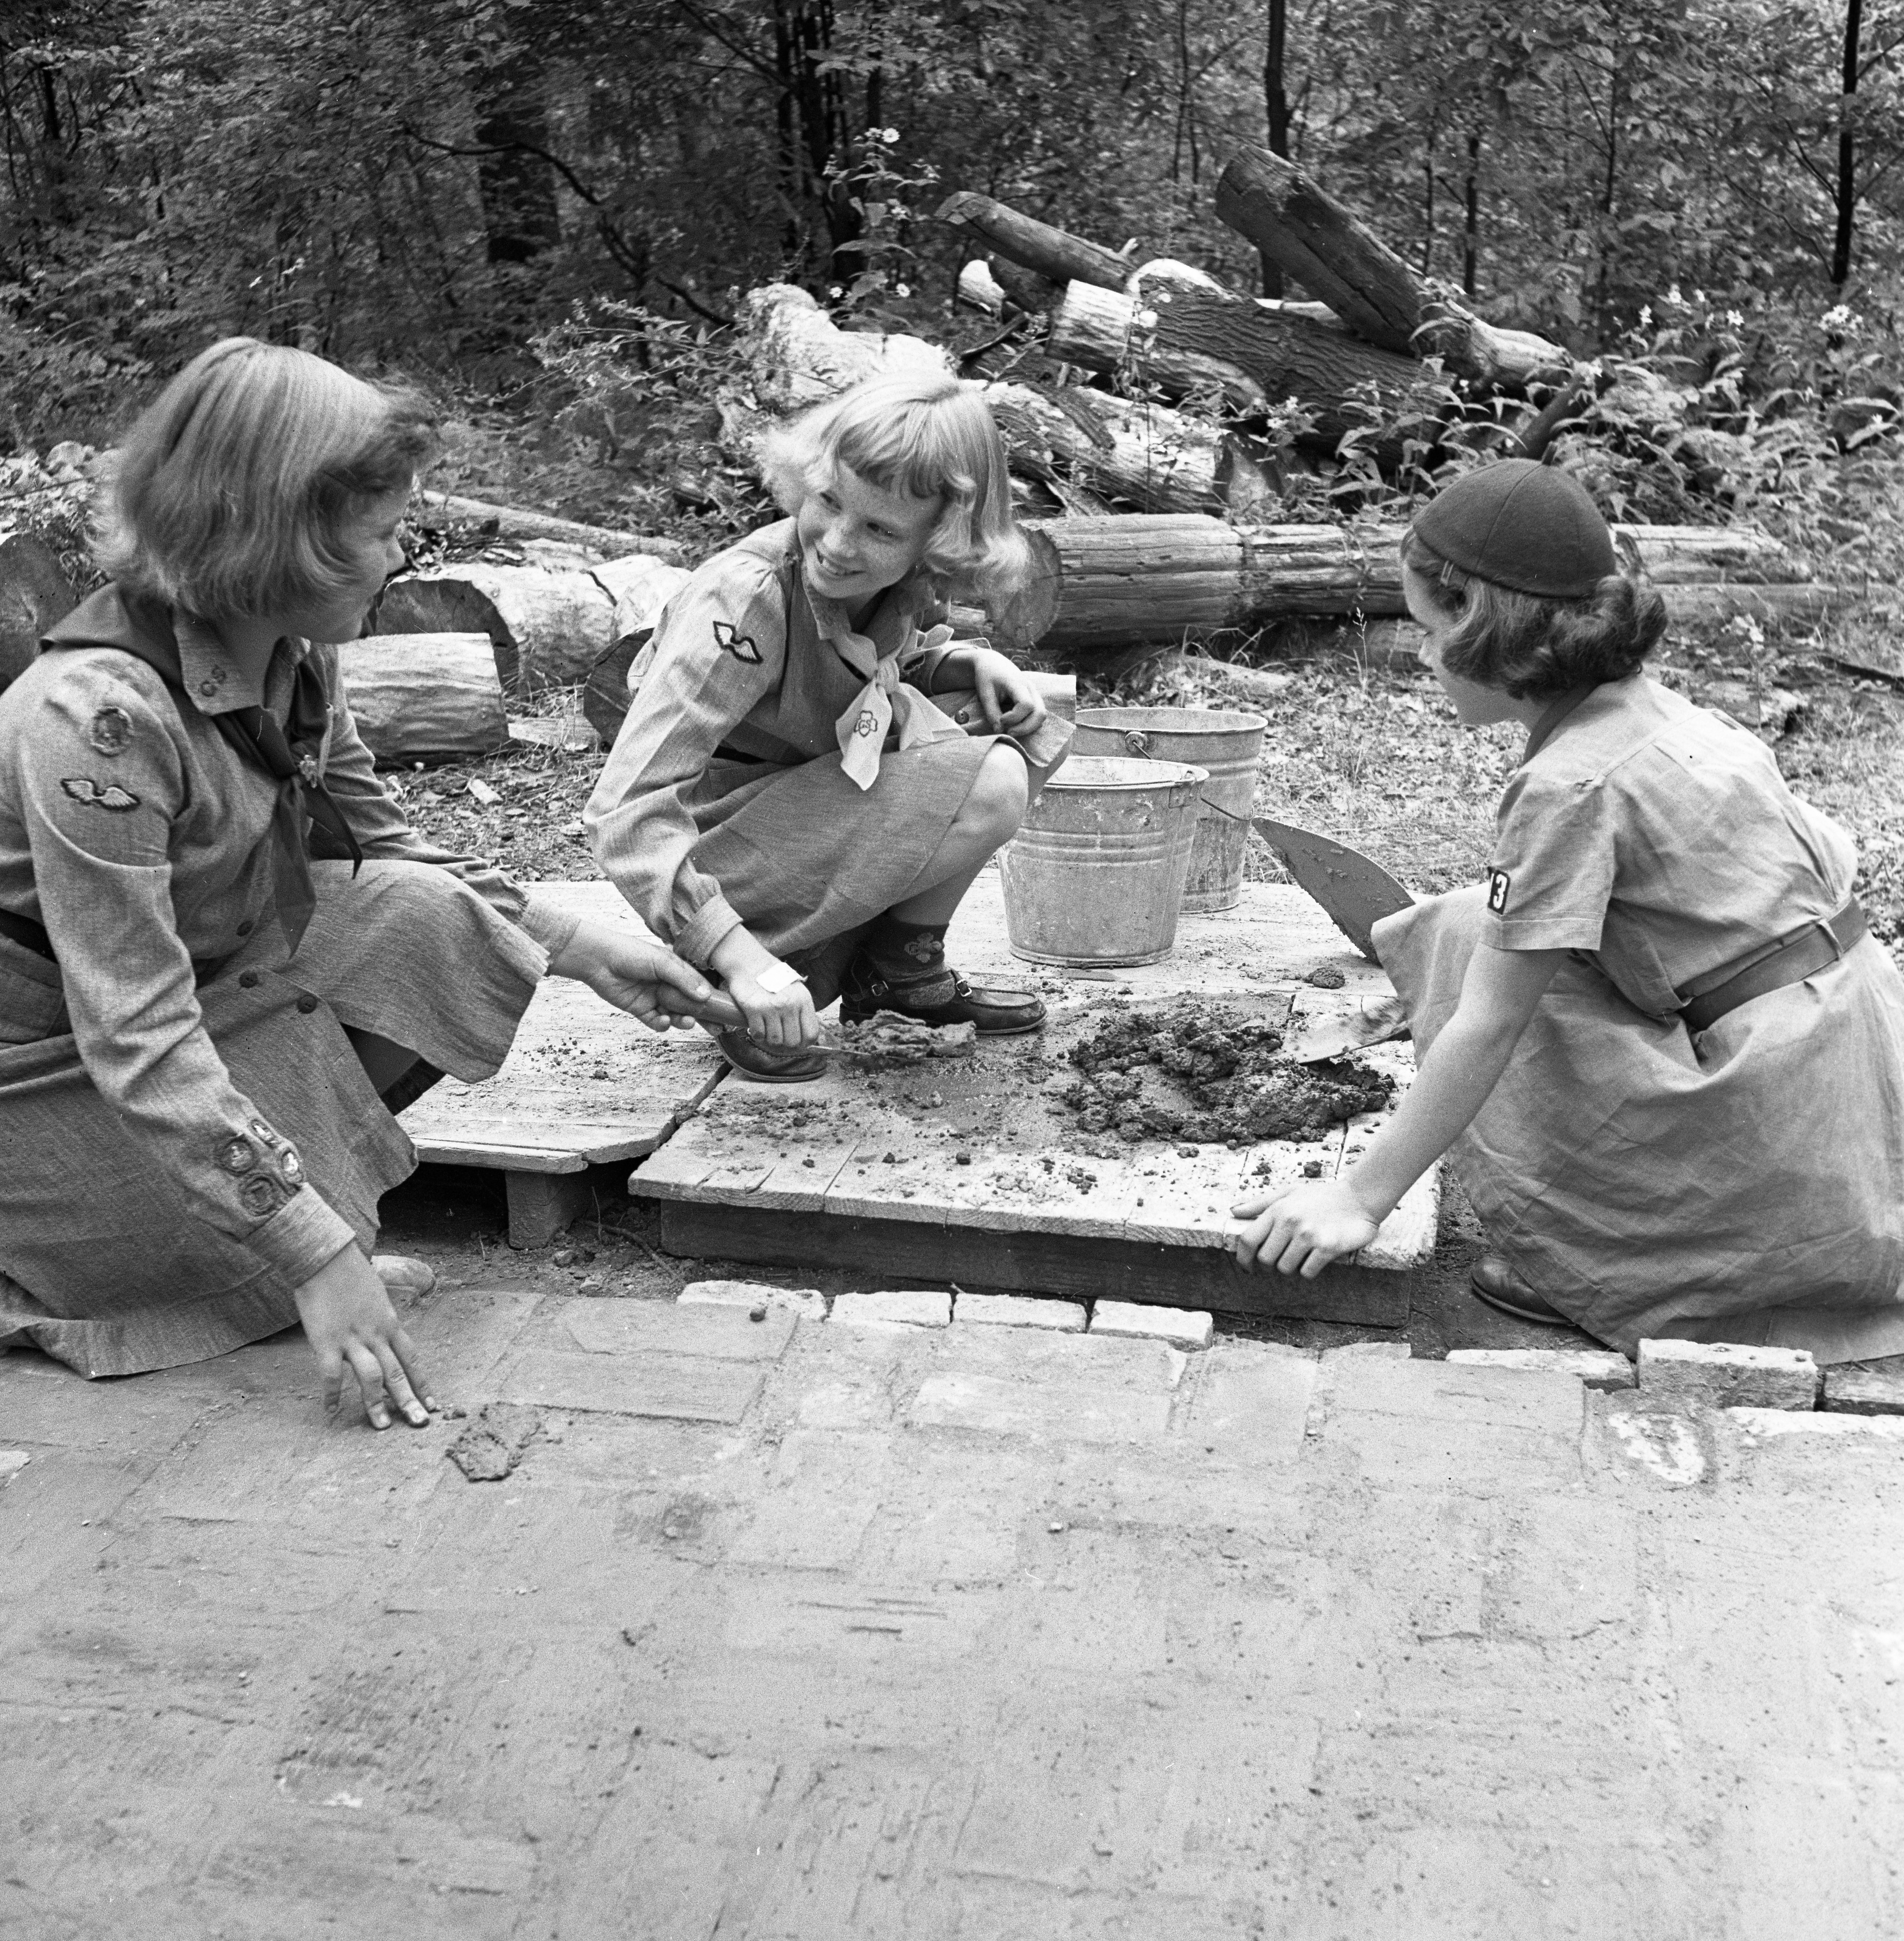 Girl Scouts Fixing Up Grounds at  Camp Hilltop, August 1951 image